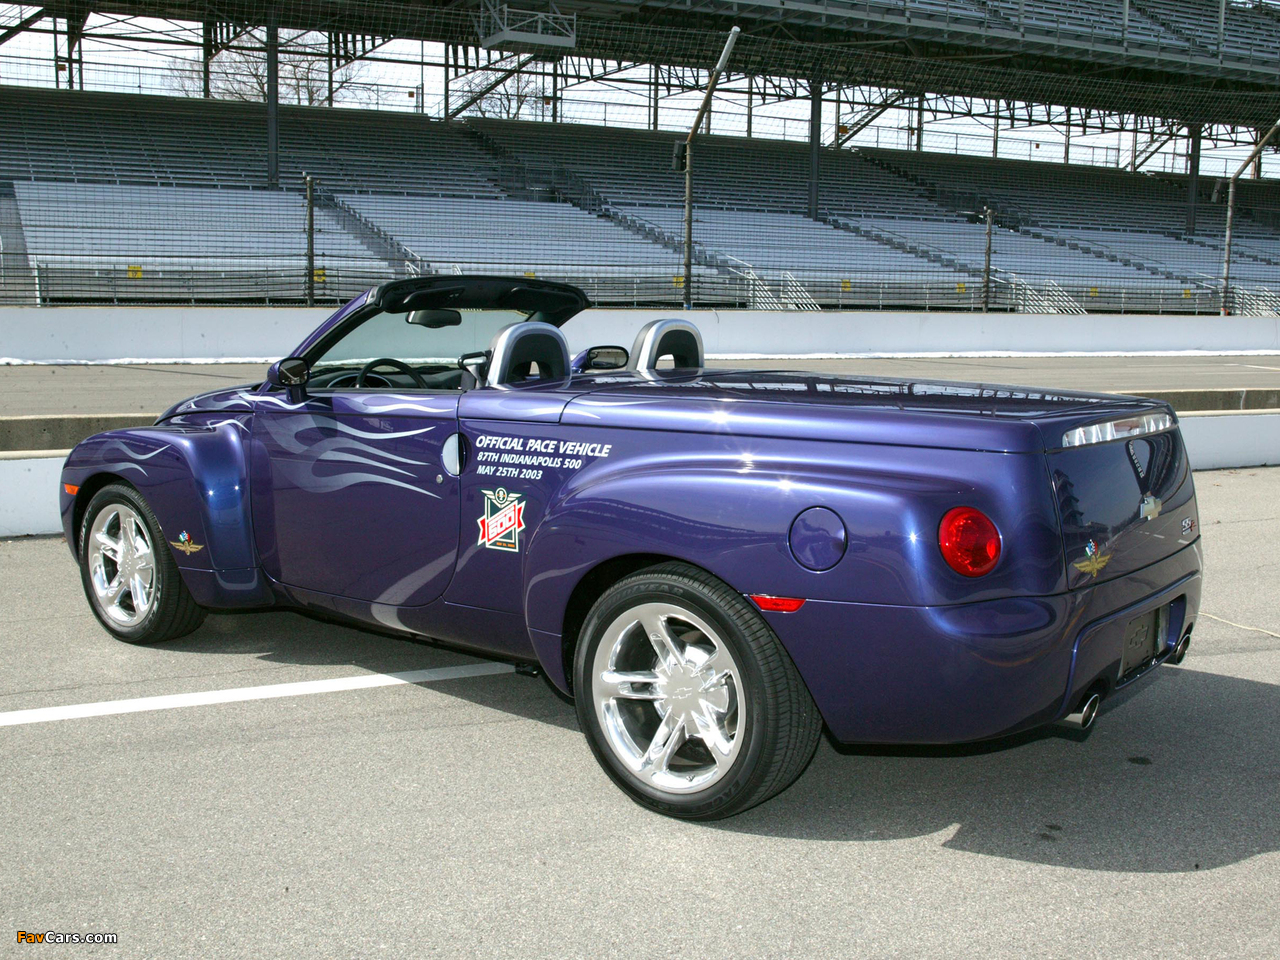 2003 Chevrolet SSR Indy 500 Pace Vehicle photo - 2